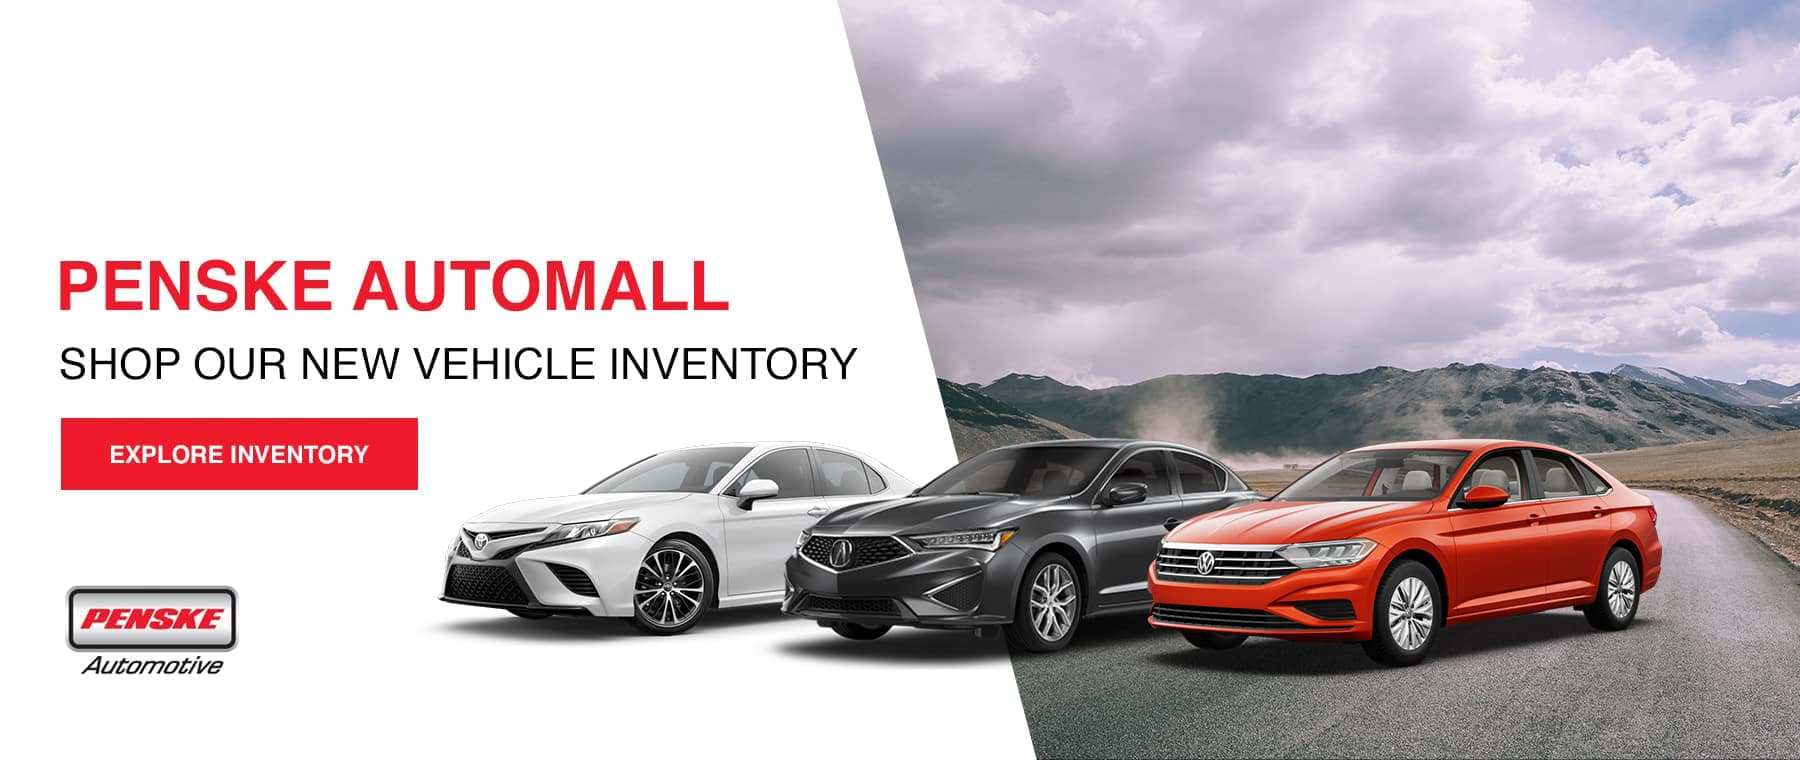 PENSKE AUTOMALL, SHOP OUR NEW VEHICLE INVENTORY